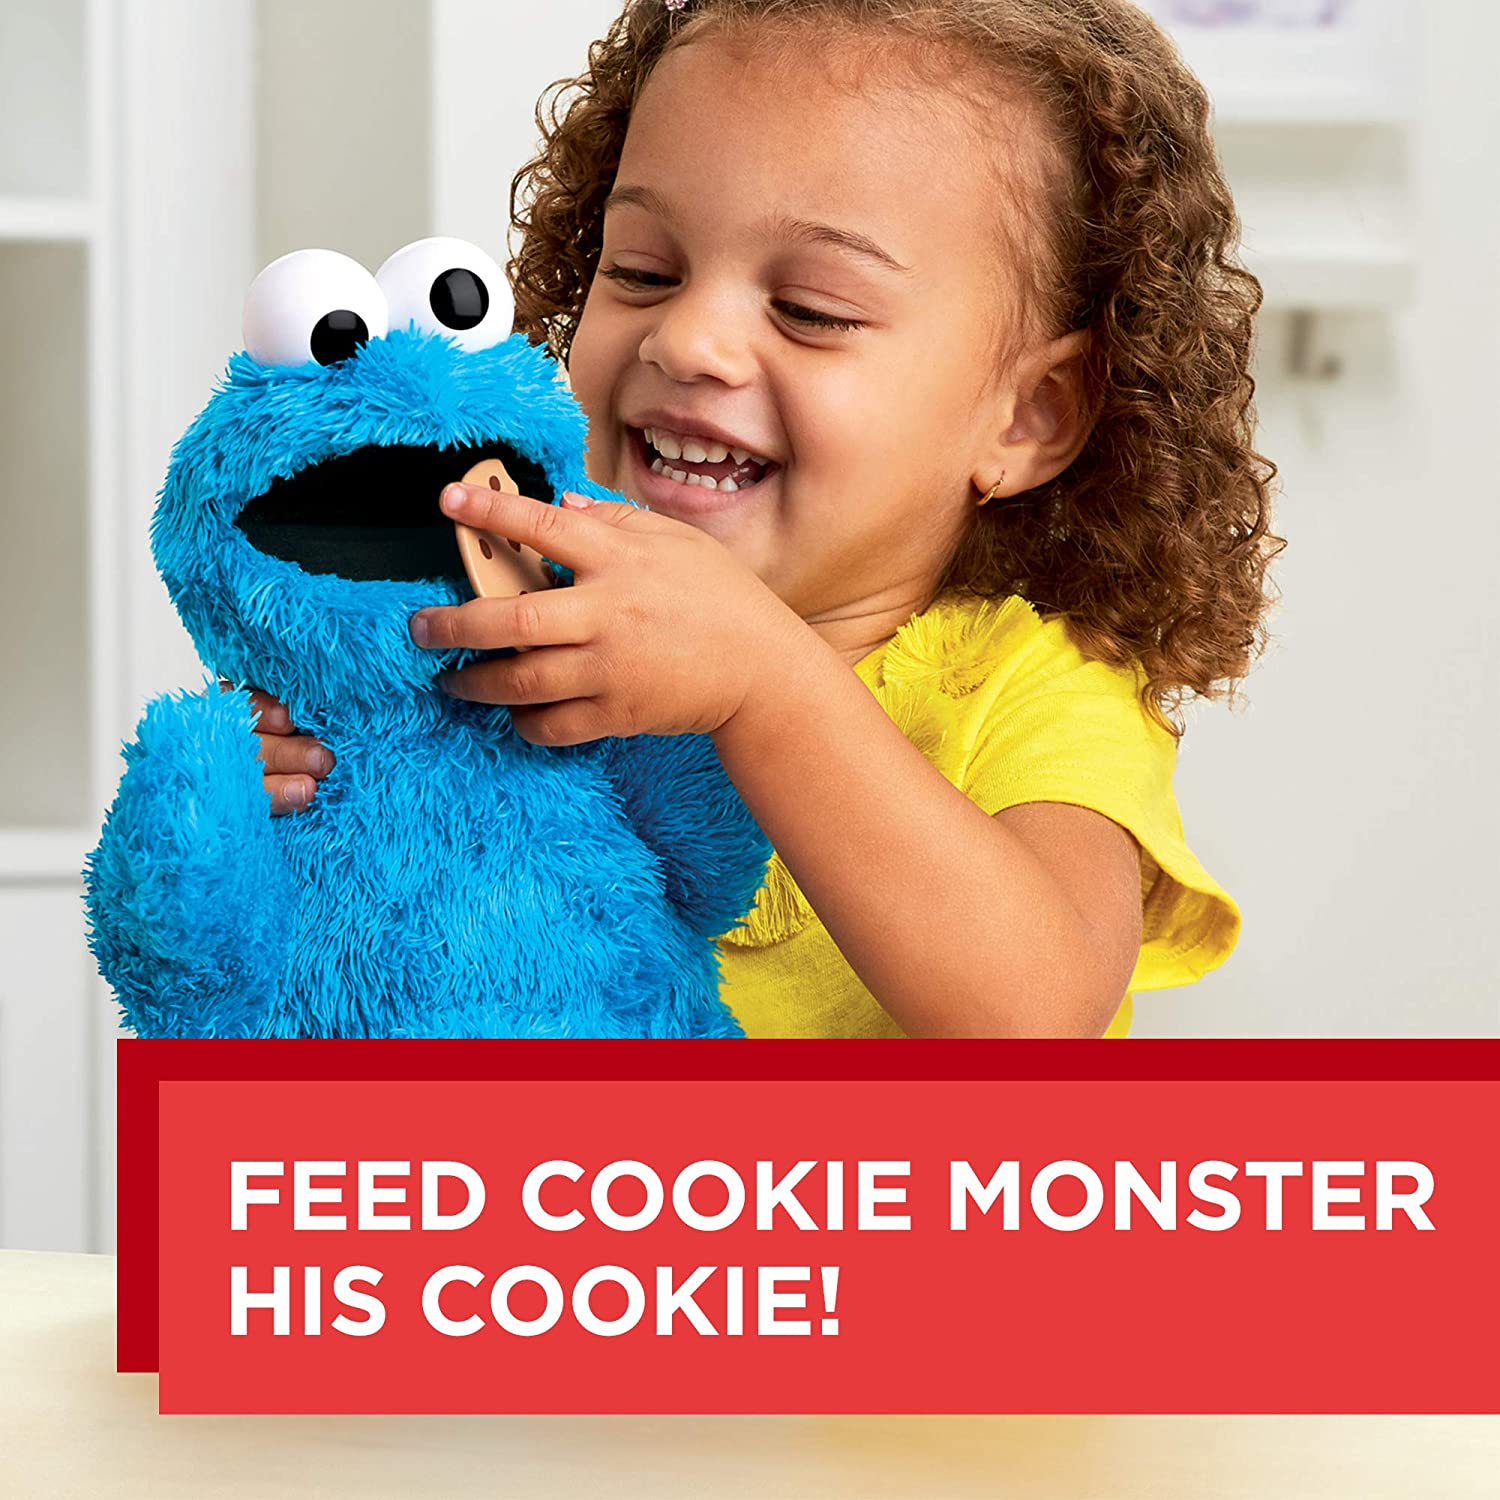 Sesame Street Feed Me Cookie Monster Plush Interactive 13 Inch Cookie Monster Says Silly Phrases Belly Laughs Sesame Street Toy For Kids 18 Months